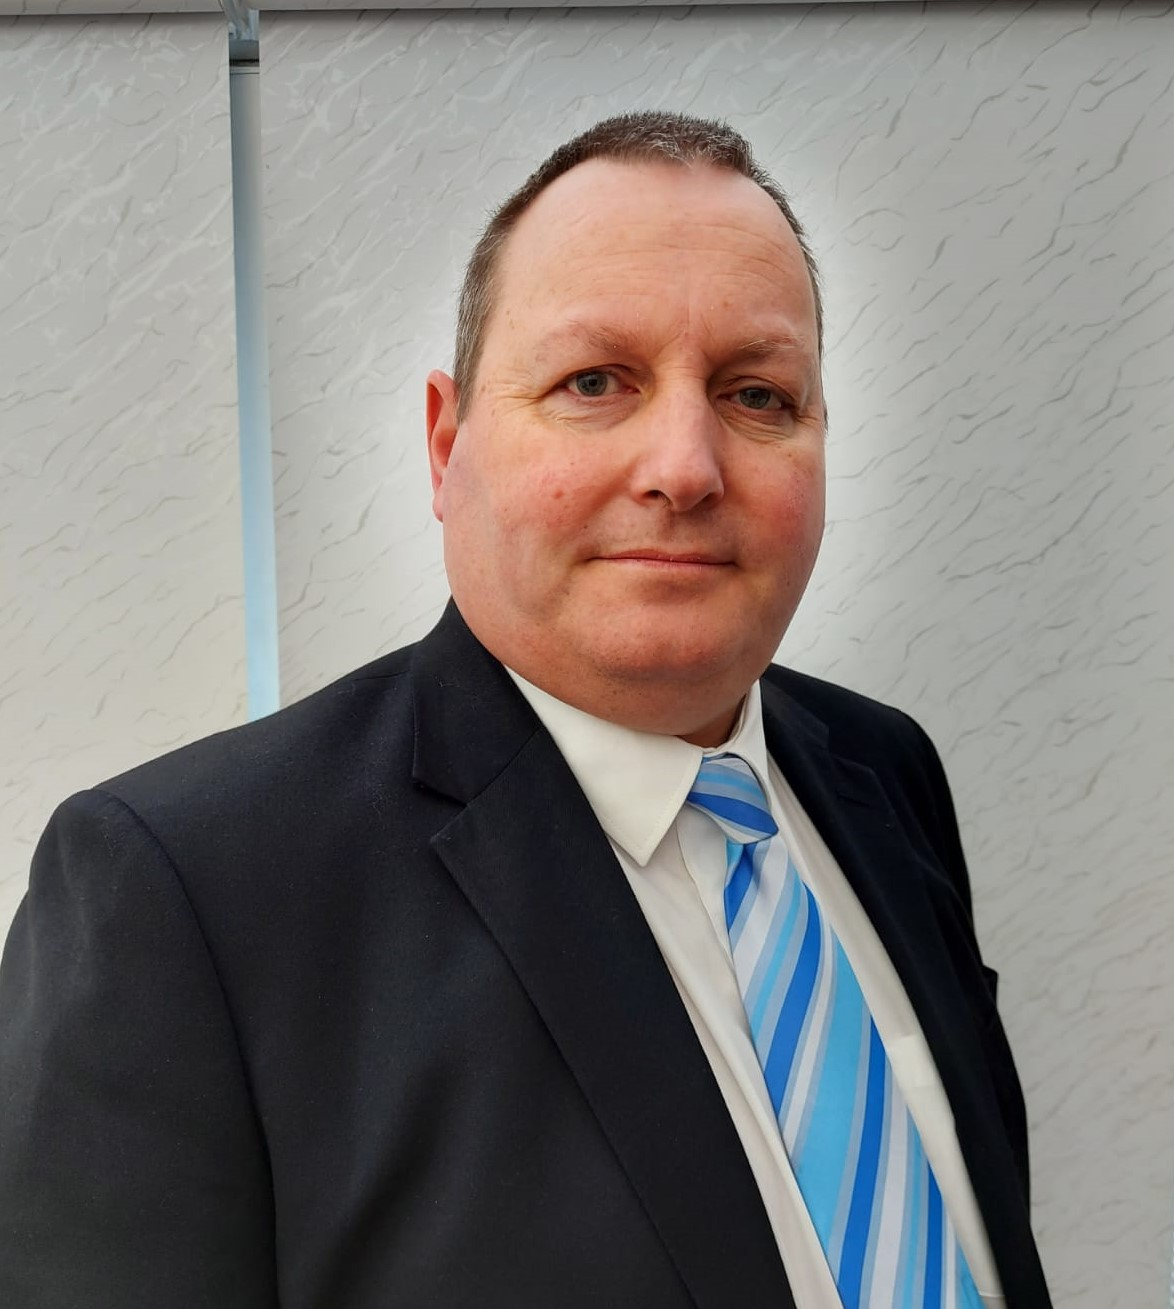 PCL appoints new national sales manager